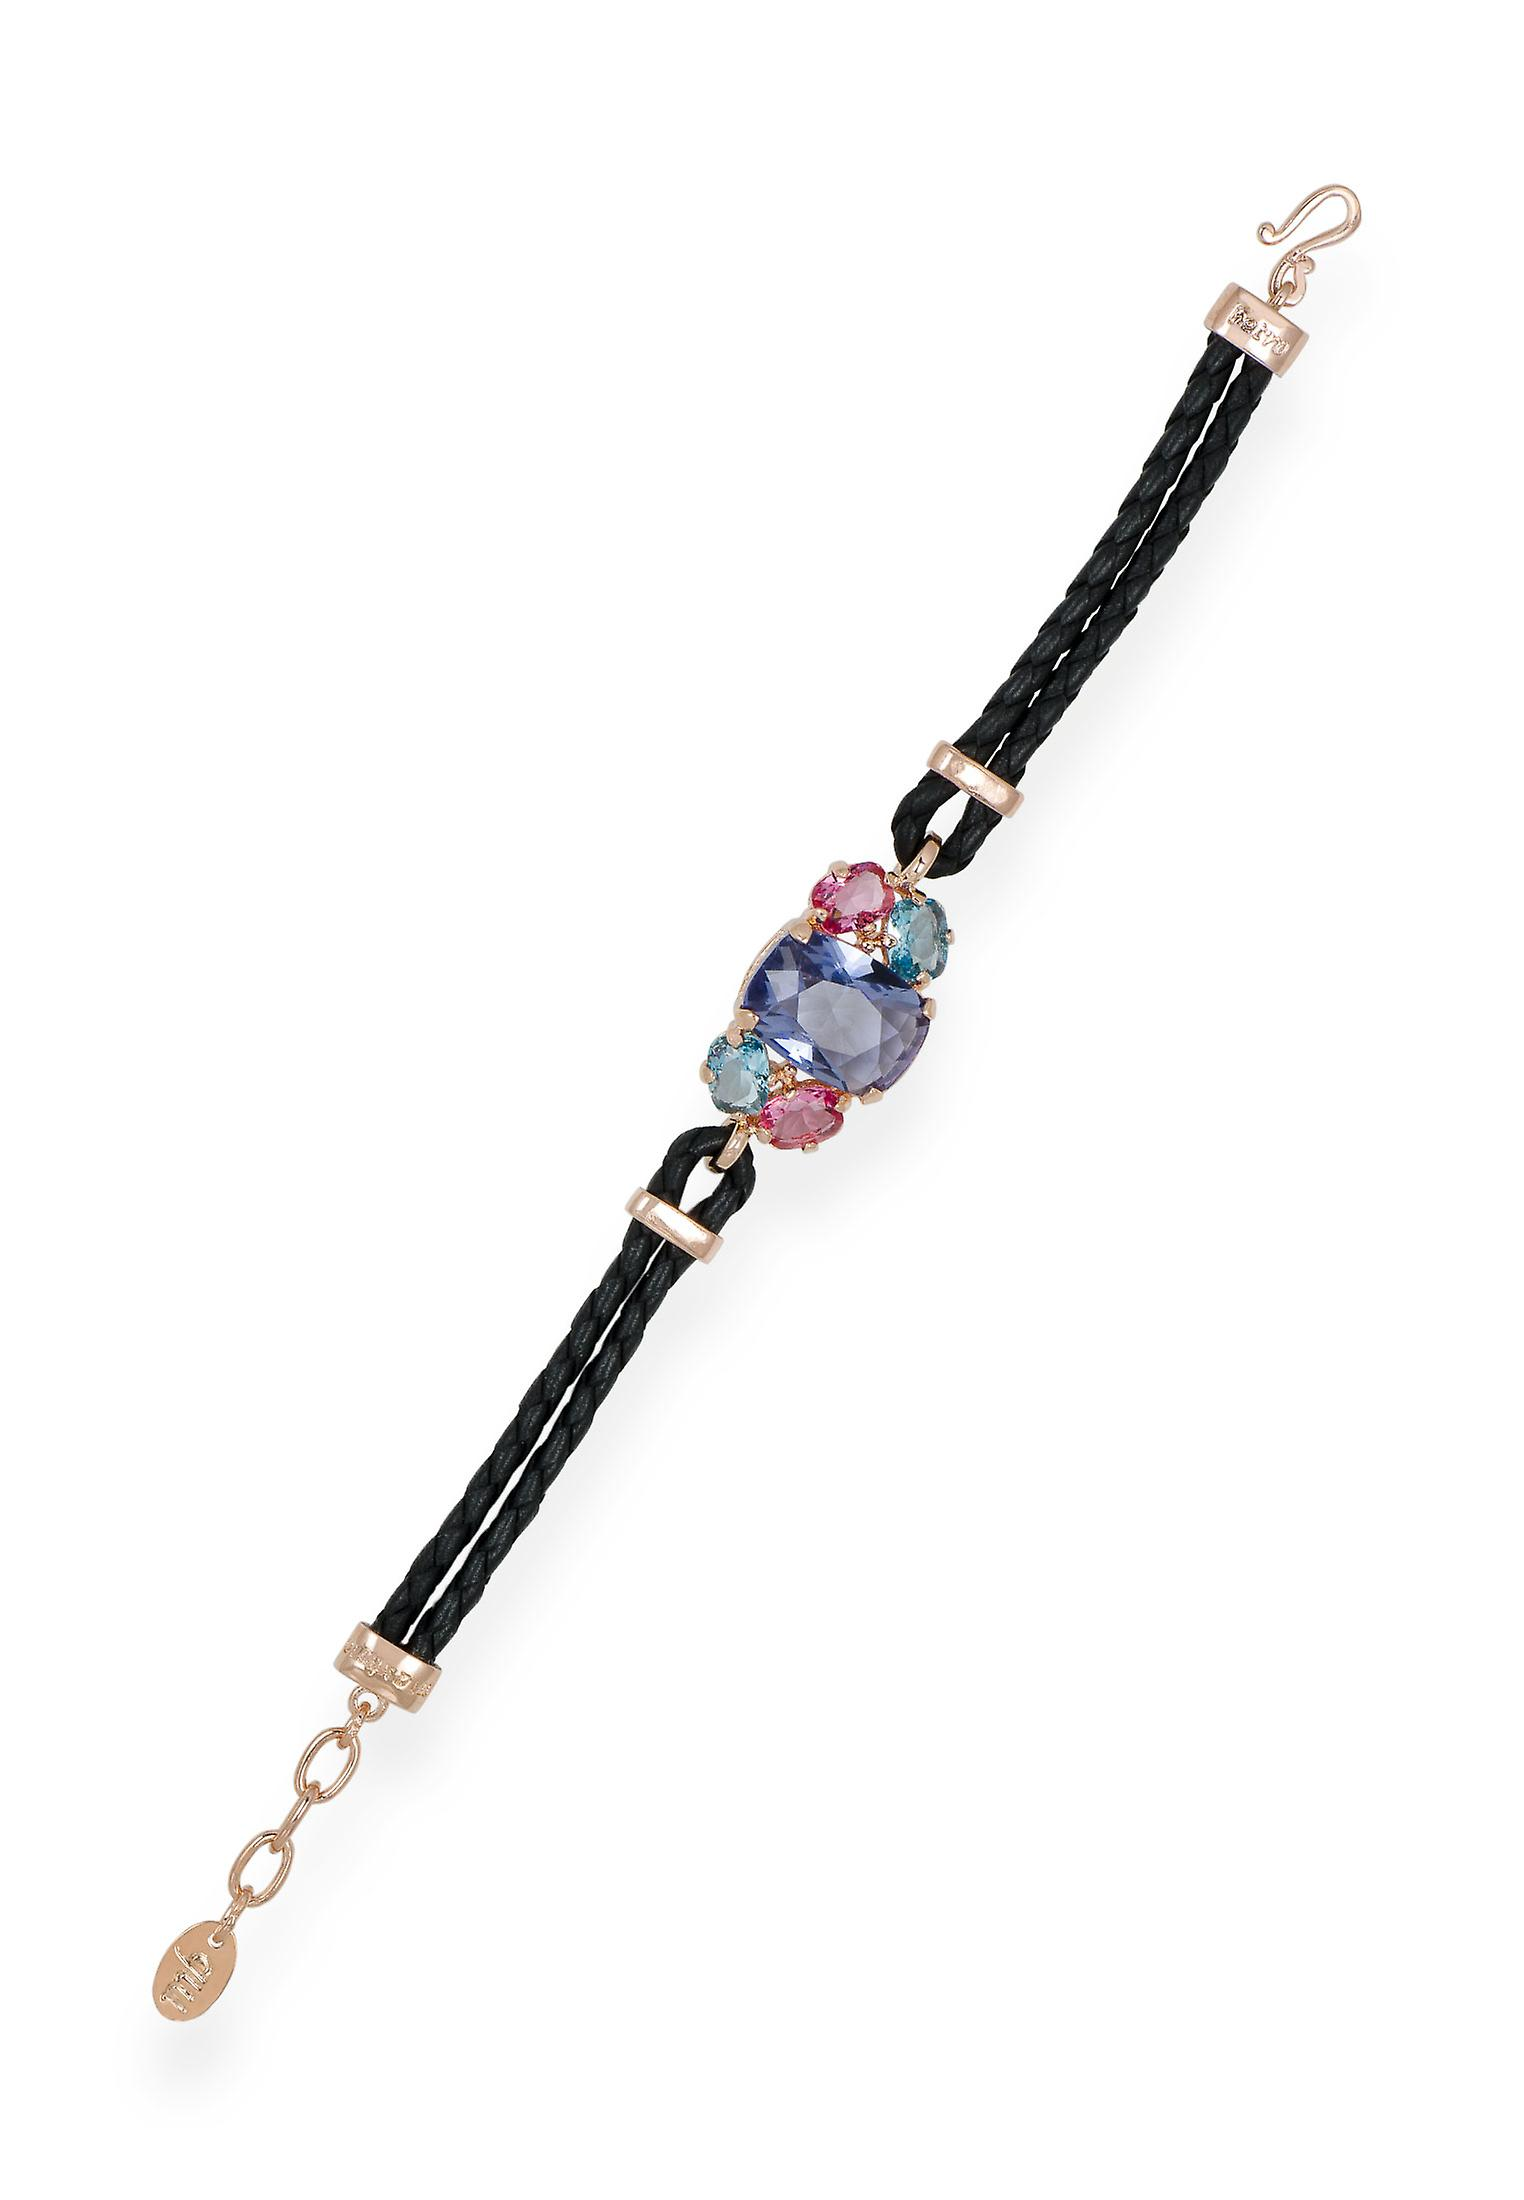 Multicolor bracelets with crystals from Swarovski 6316